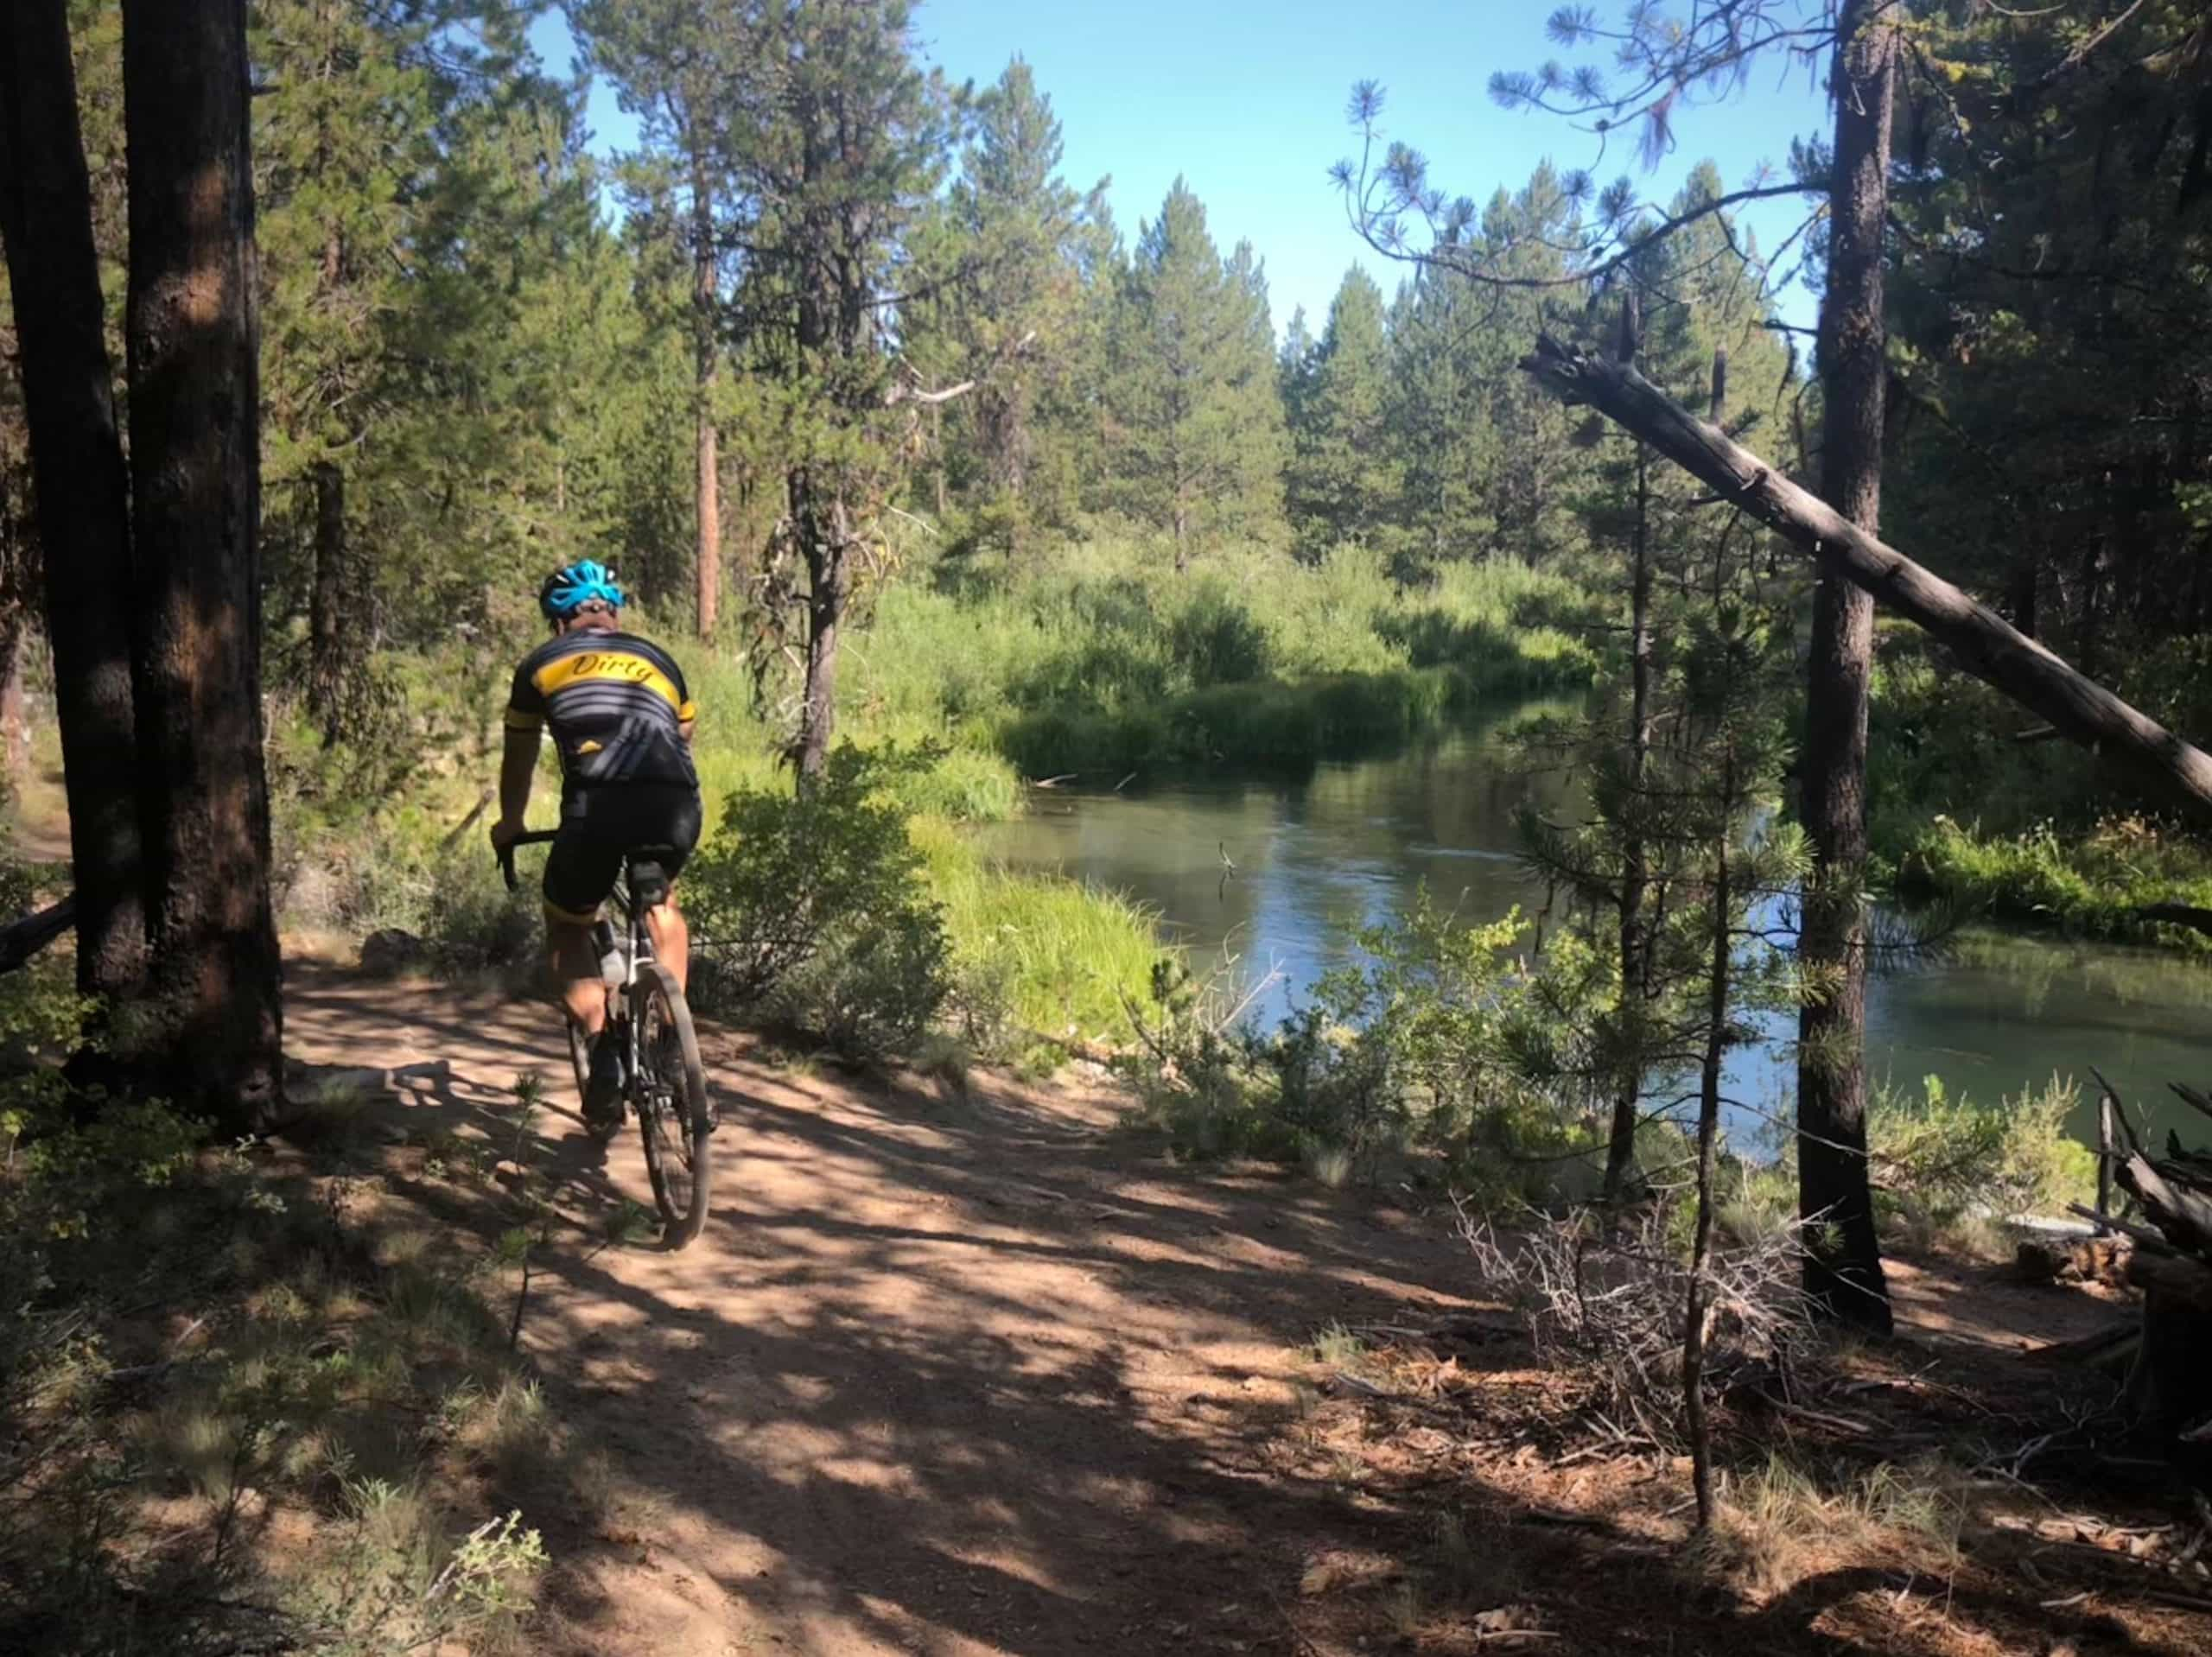 Cyclist on dirt trail in LaPine State park near Fall River.